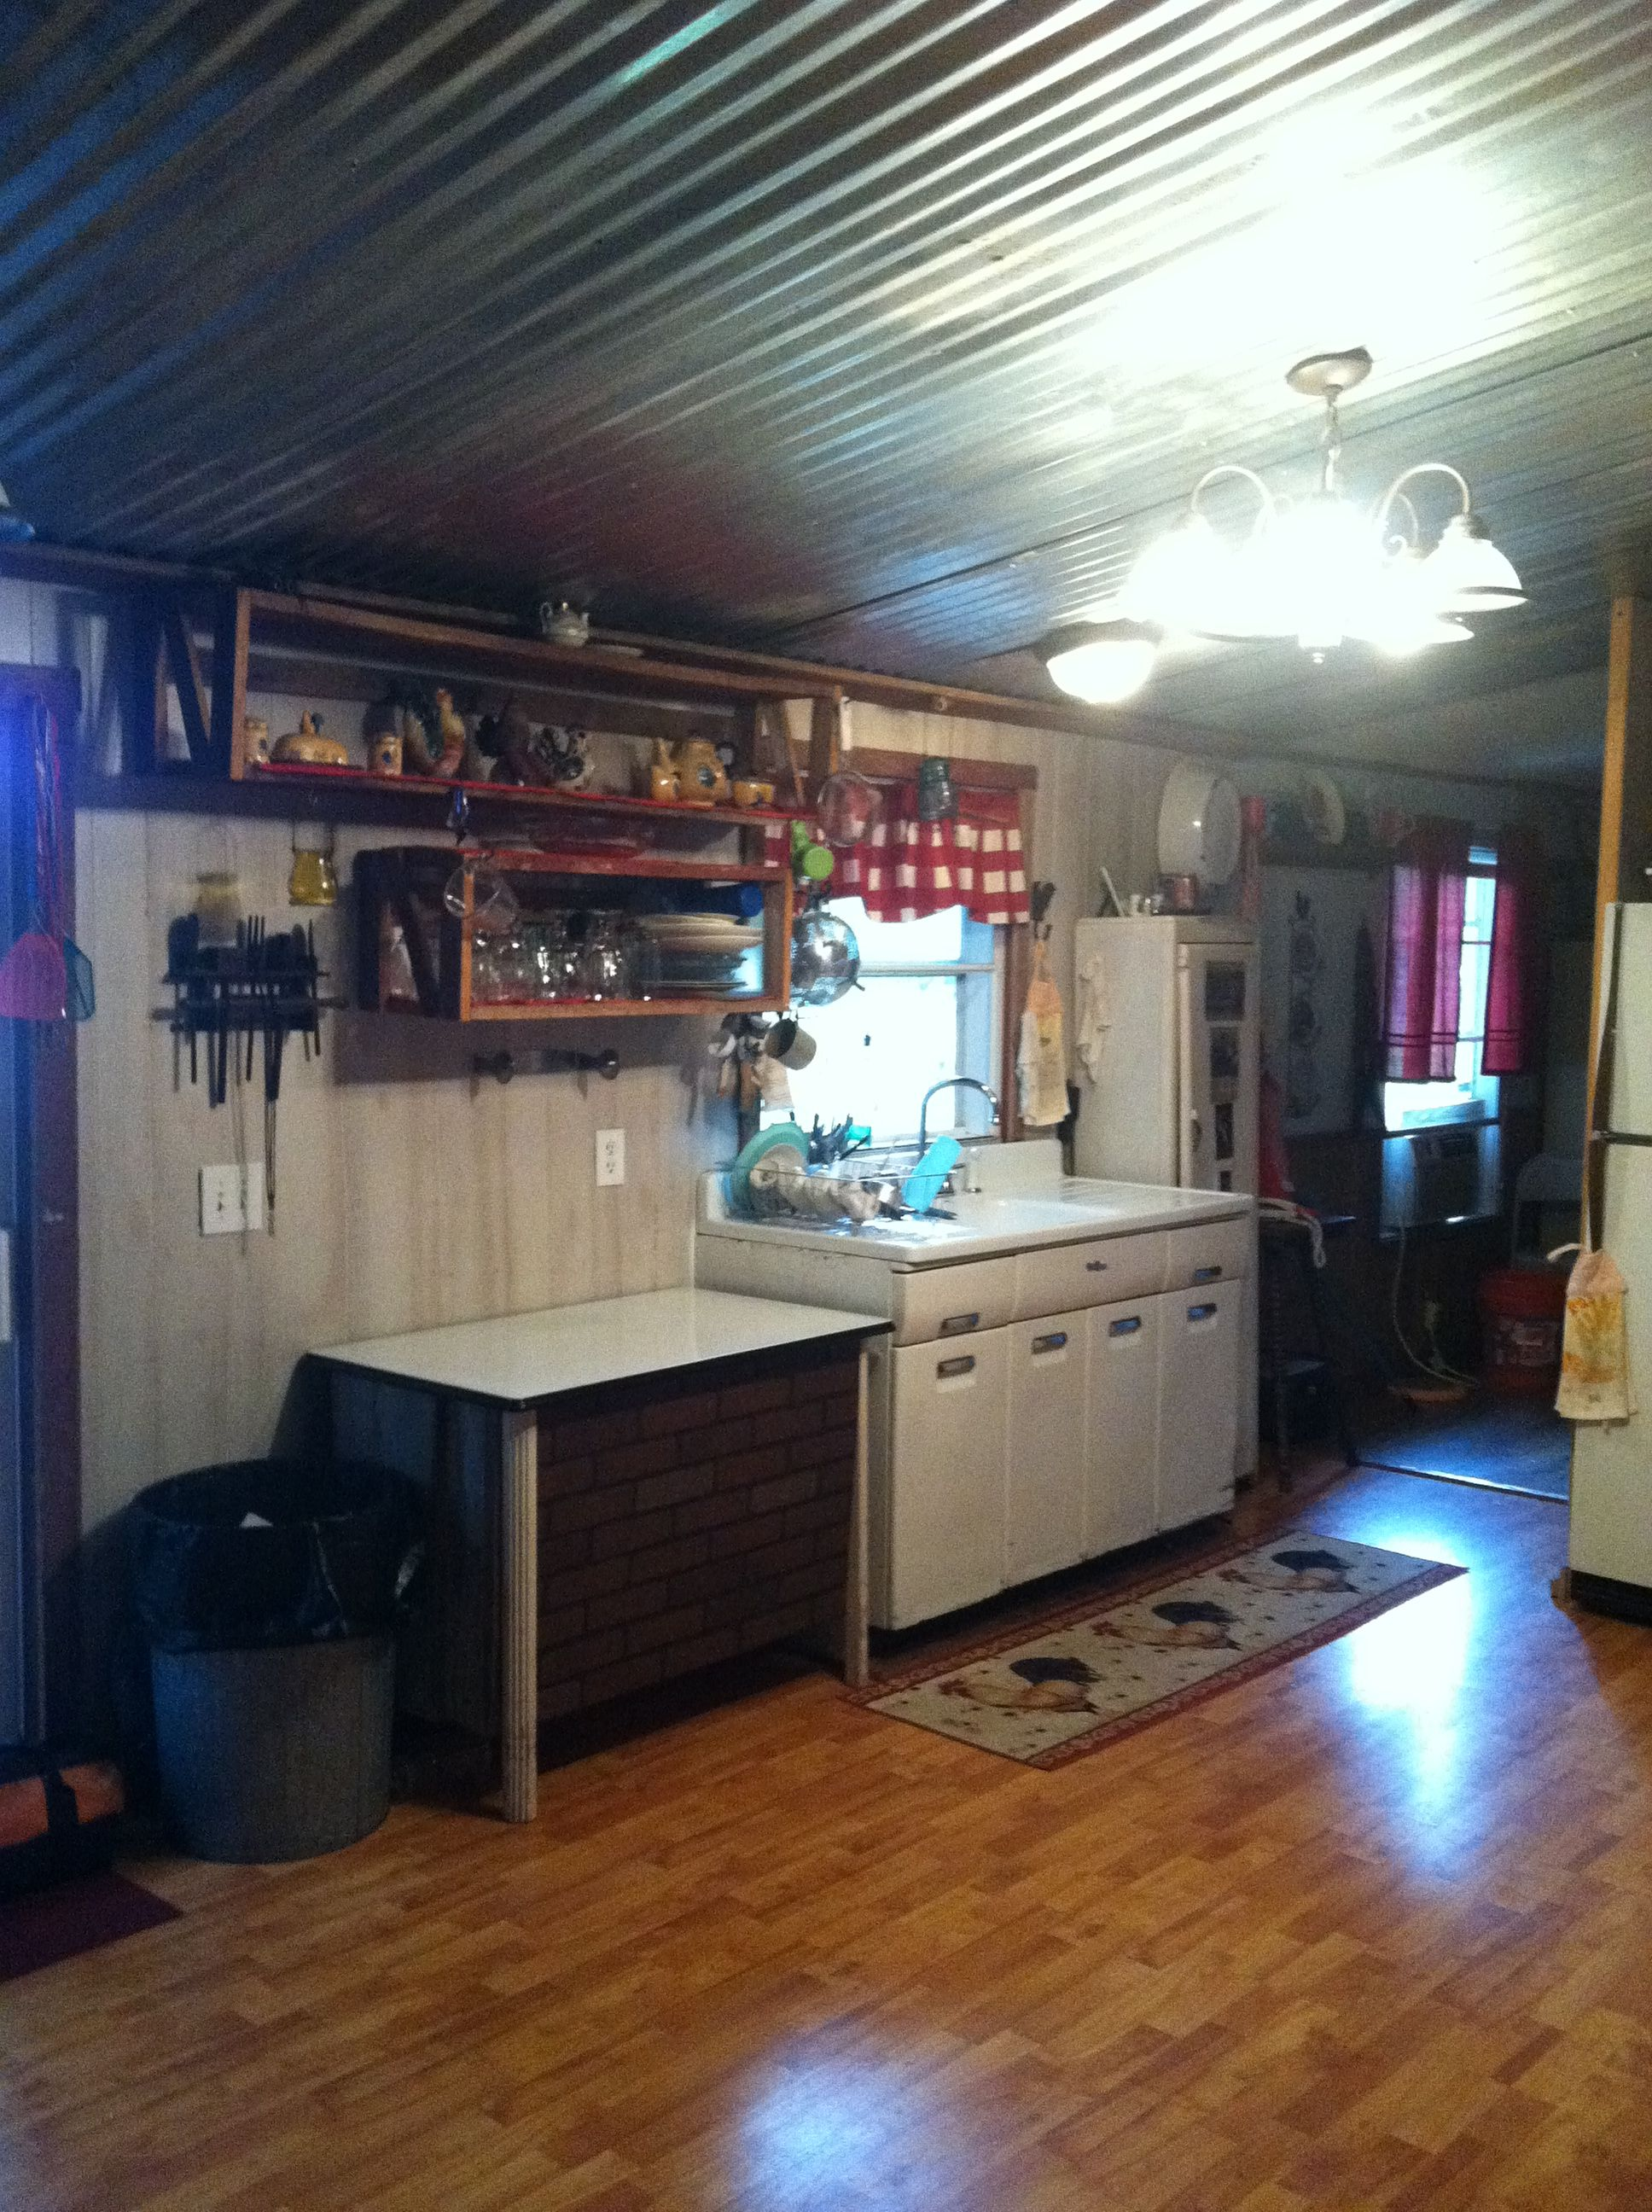 Best Kitchen Gallery: Diy Mobile Home Remodeling Gallery Of Kitchen Renovation Before And of Redneck Kitchen Ideas on rachelxblog.com